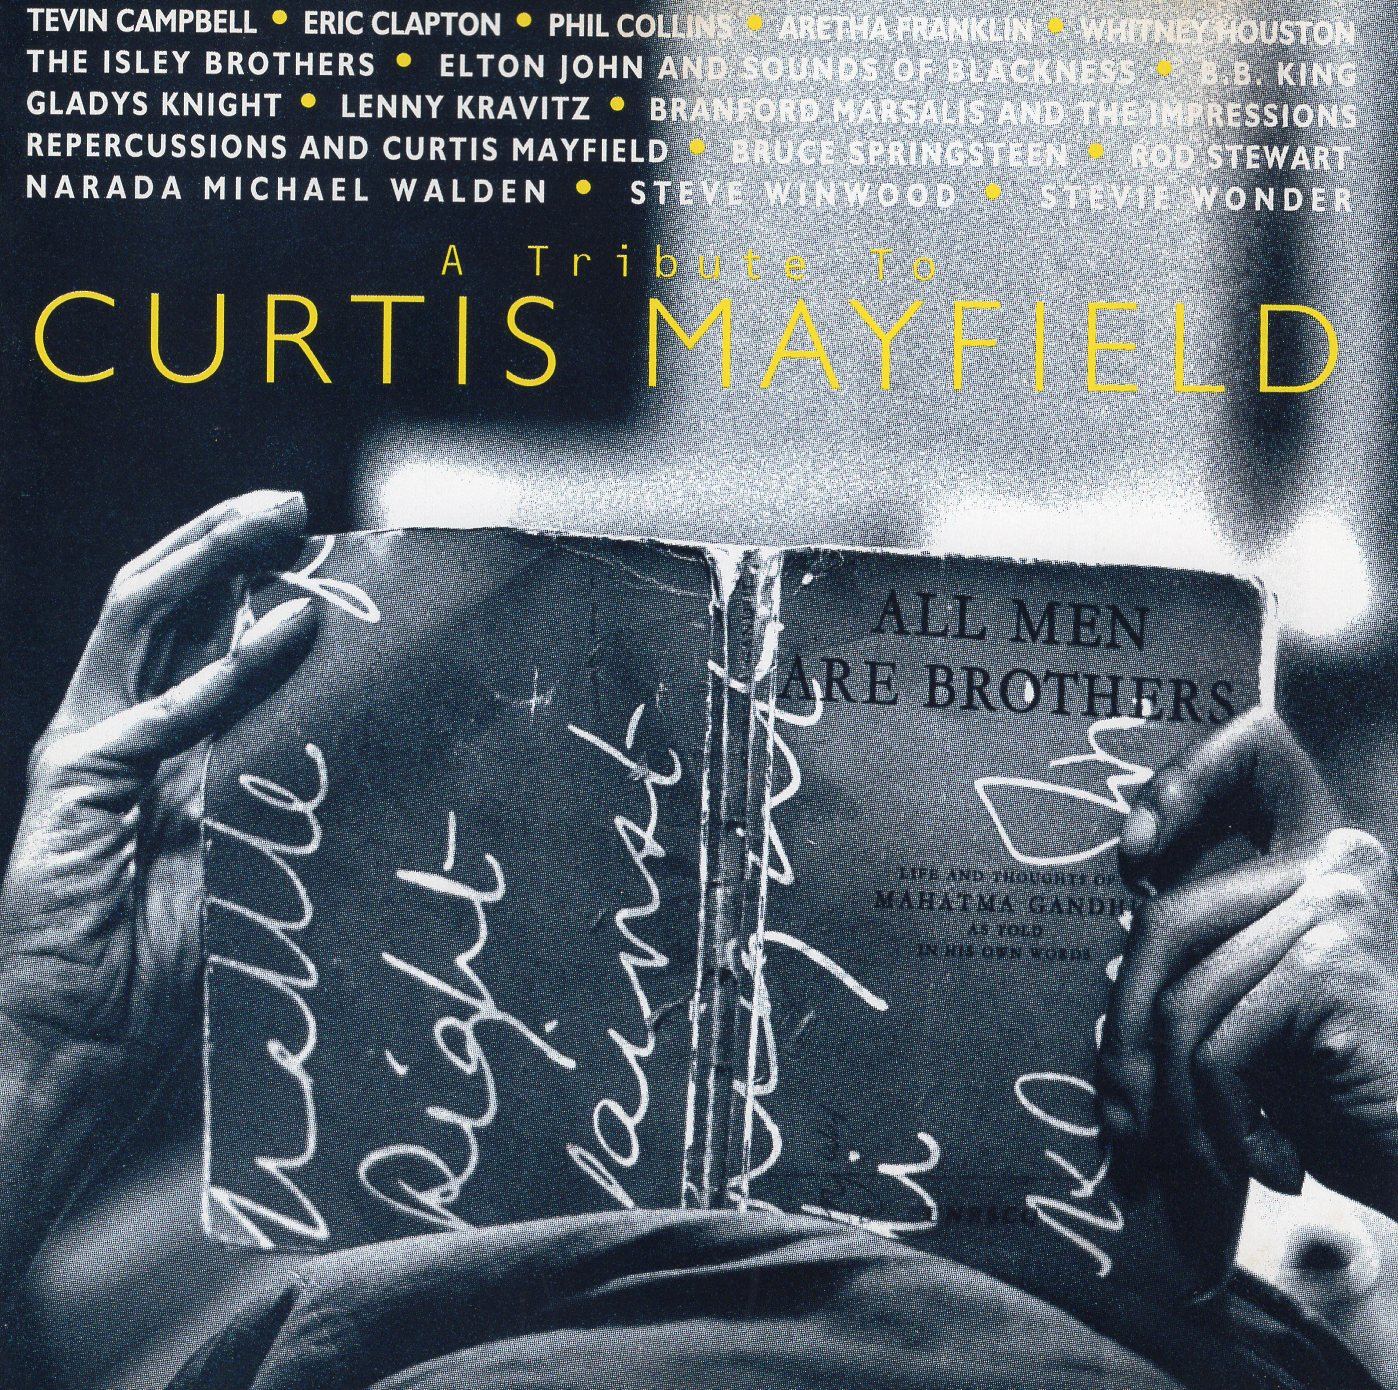 """A Tribute to Curtis Mayfield"" Curtis Mayfield"